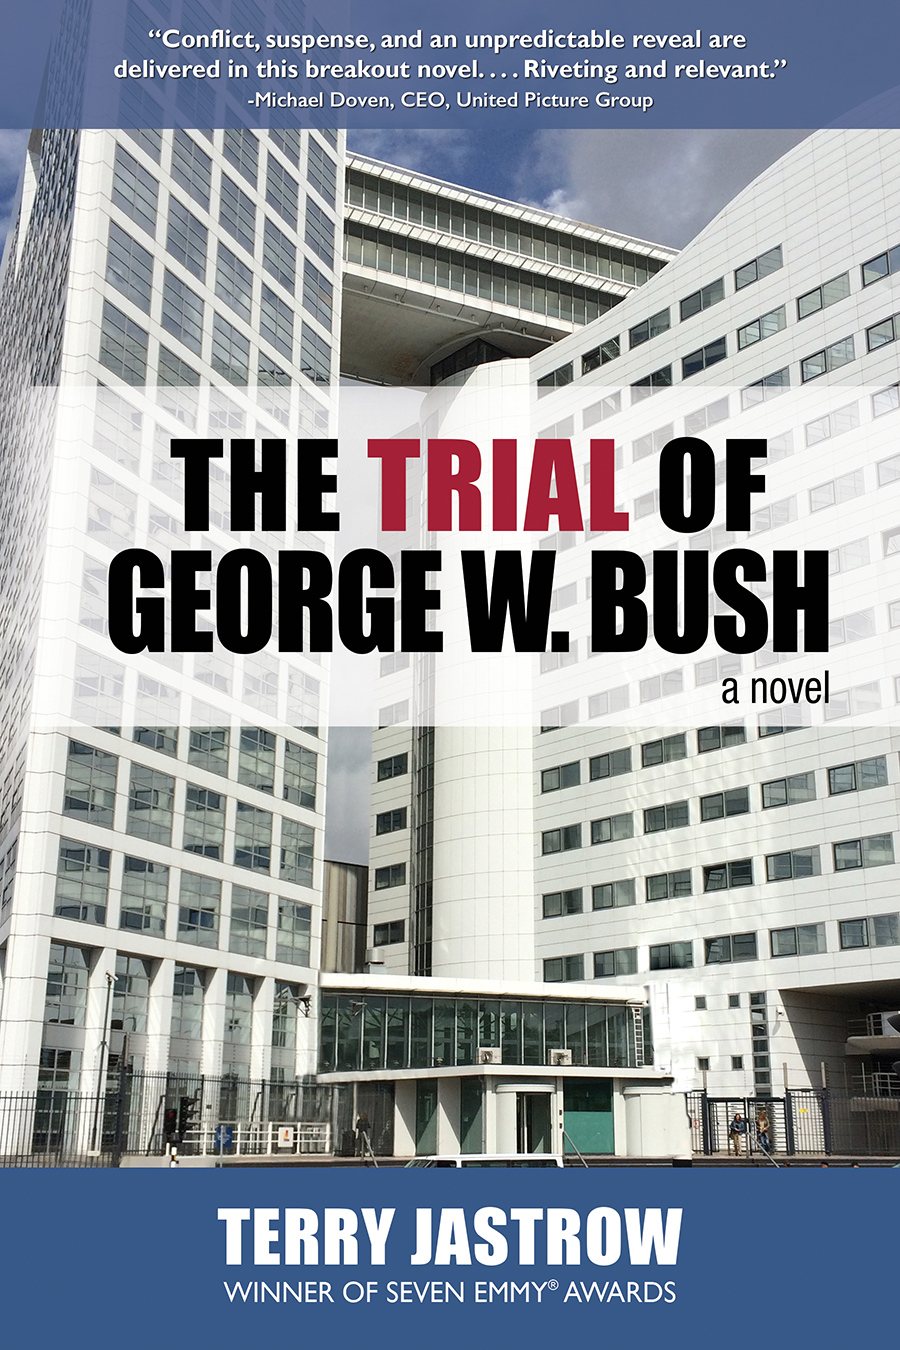 The Trial of George W. Bush